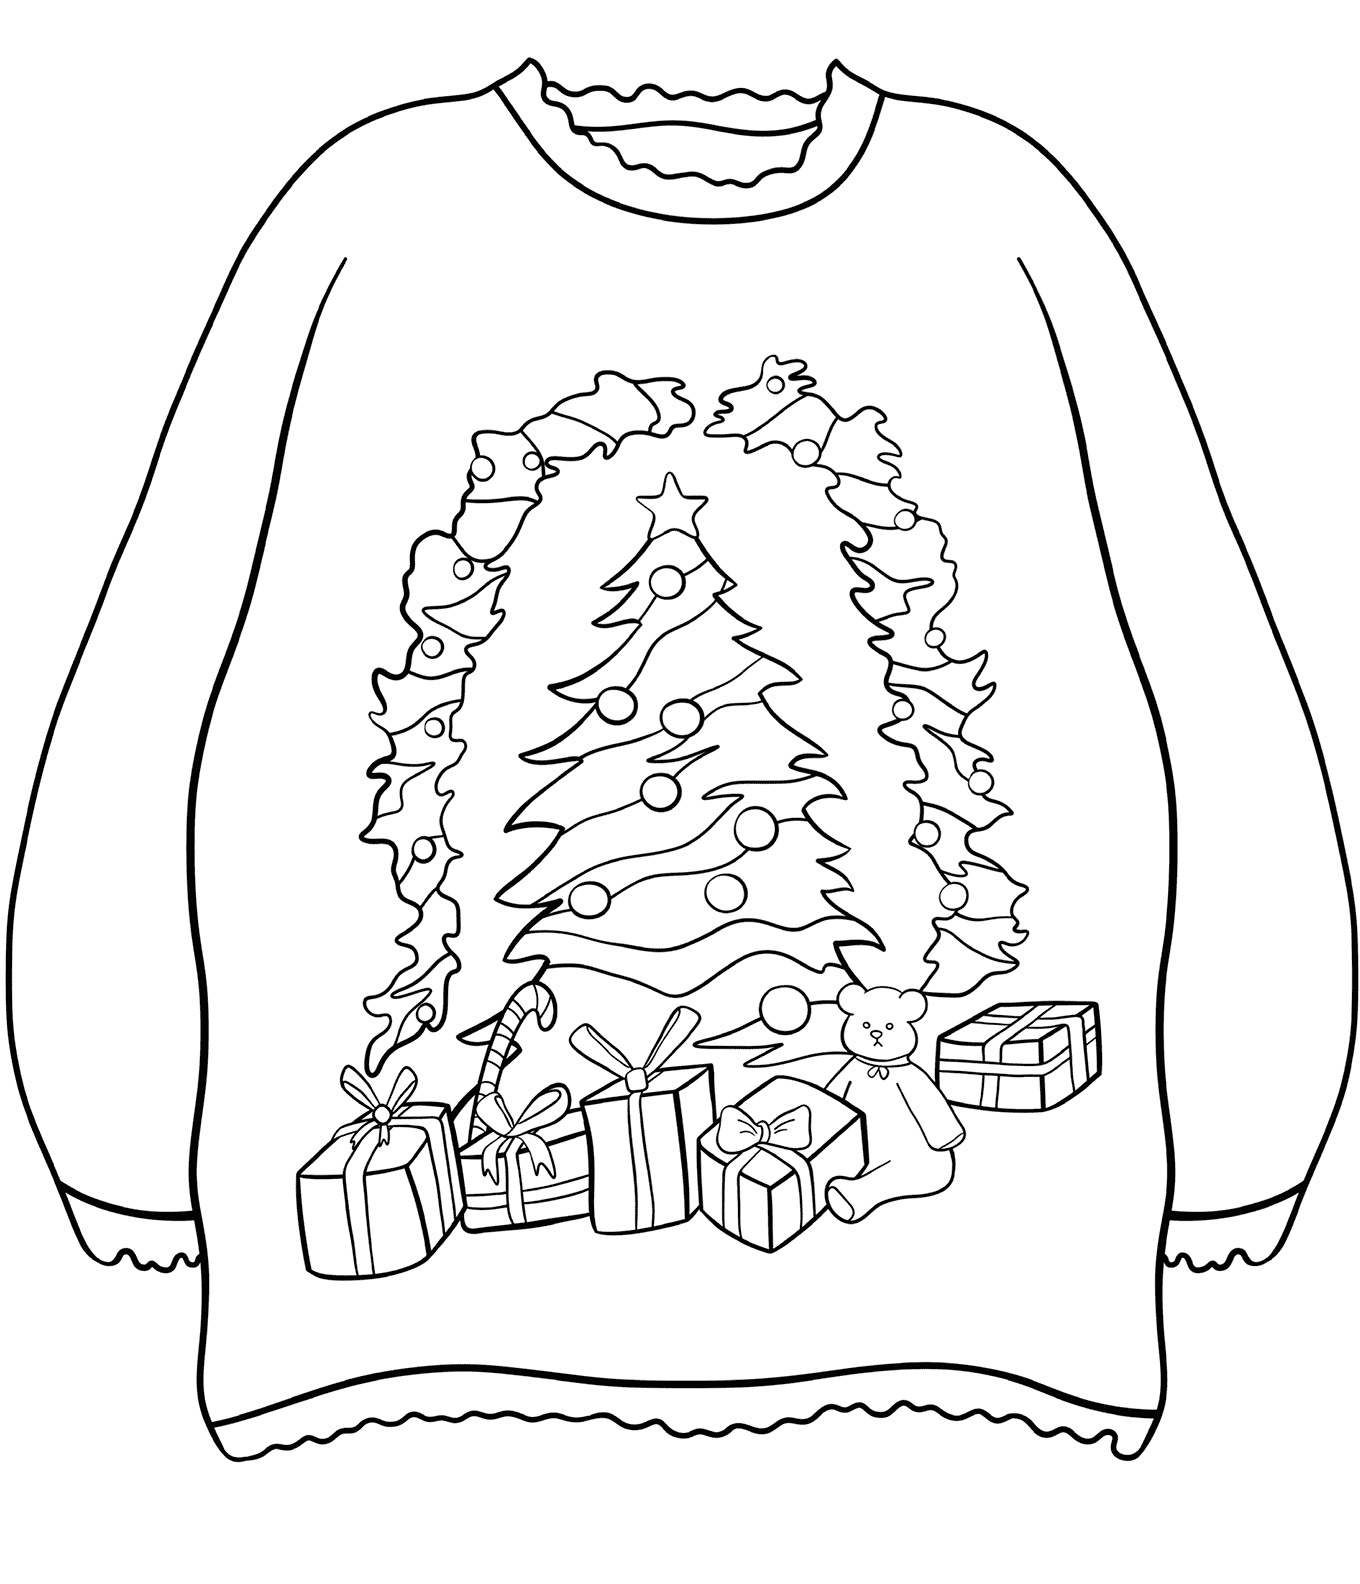 Sweater with Christmas Tree and Presents Coloring Page